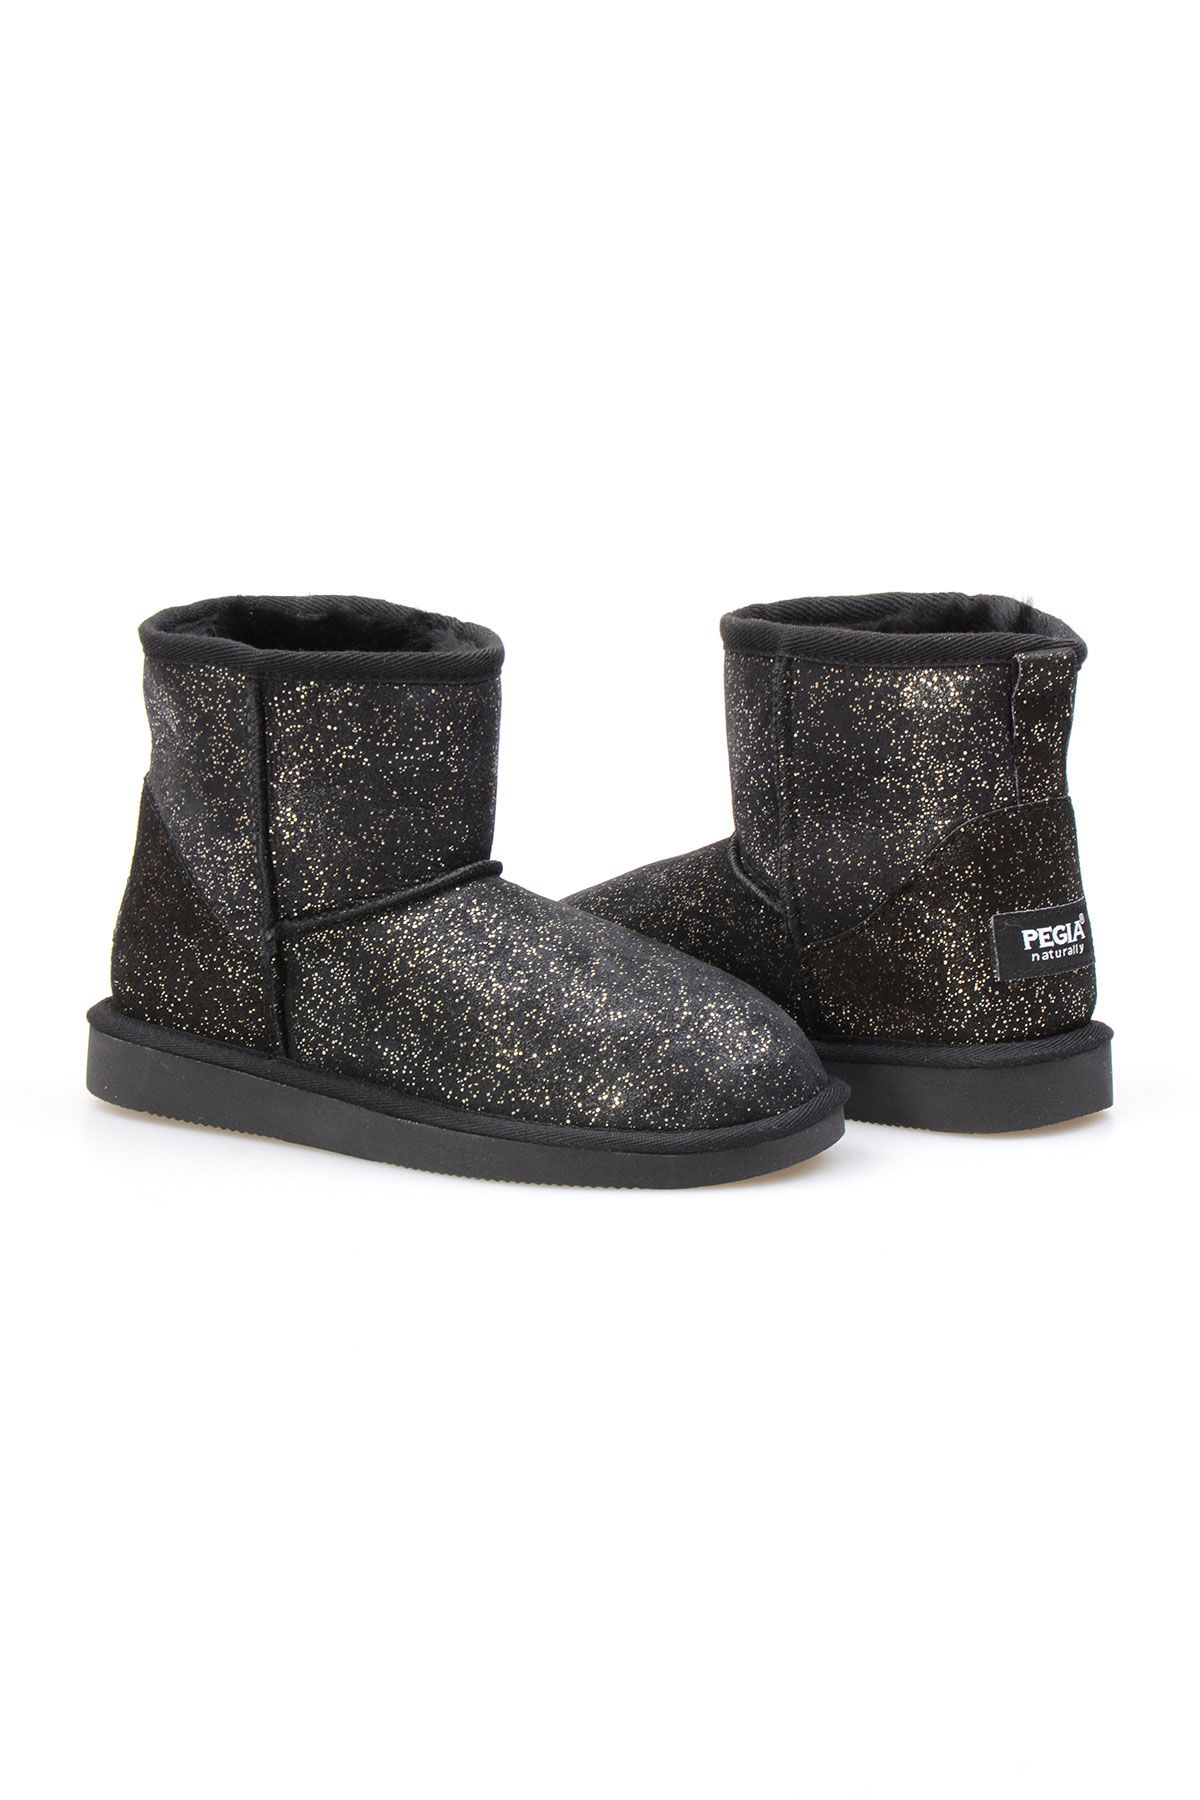 Pegia Genuine Sheepskin Galaxy Printed Women's Ankle Boots 191029 Golden